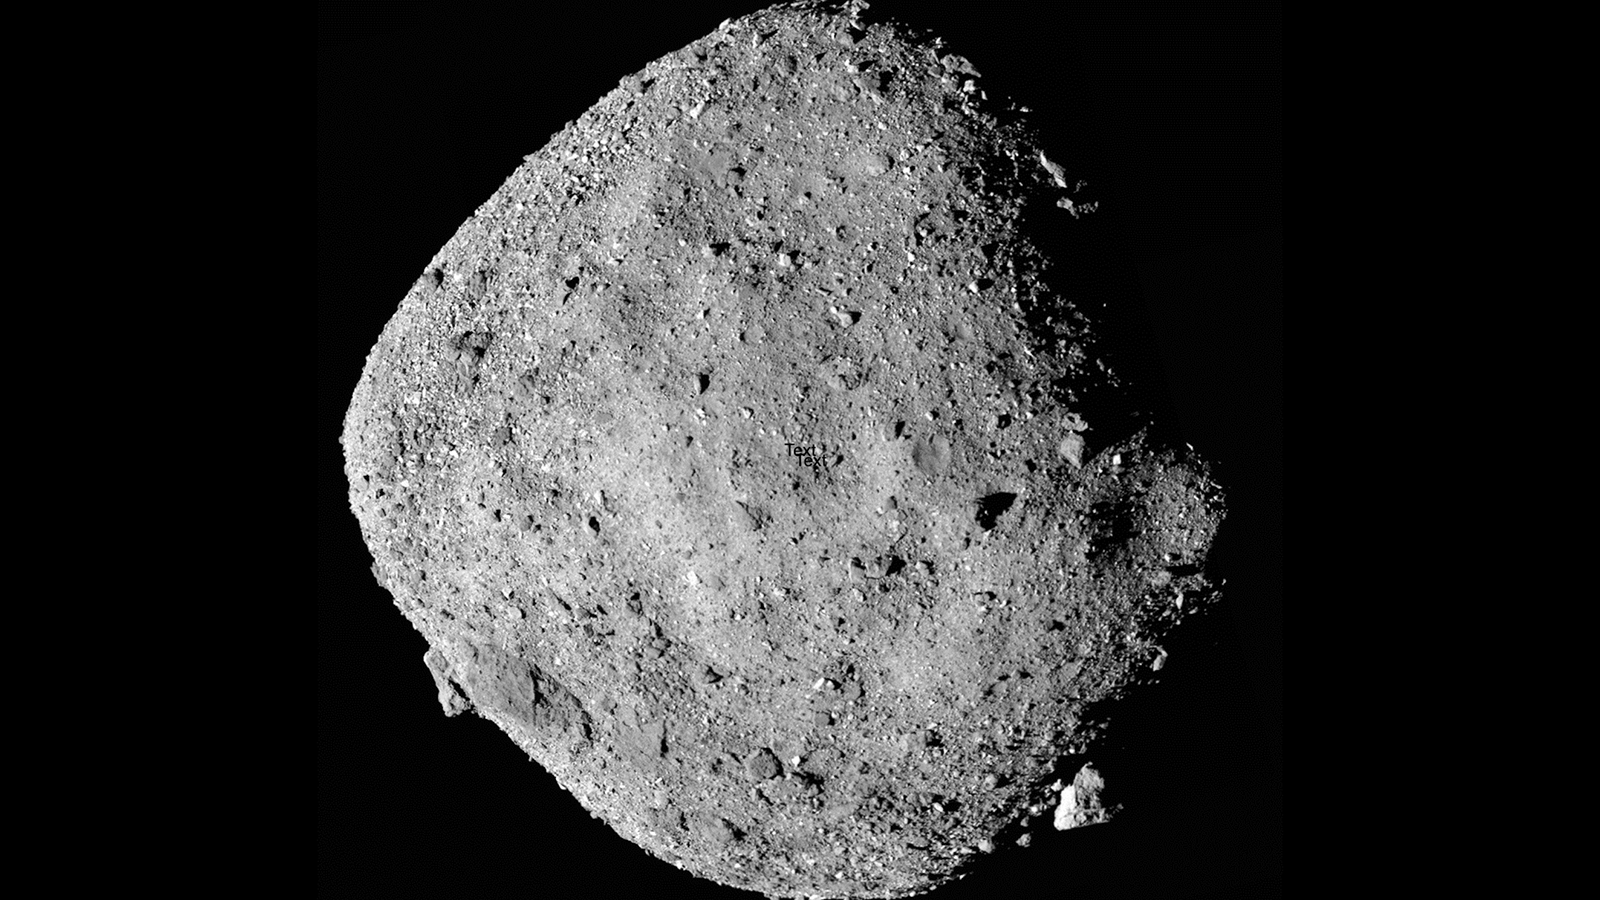 Asteroid Bennu has been hanging out with Earth for over a million years